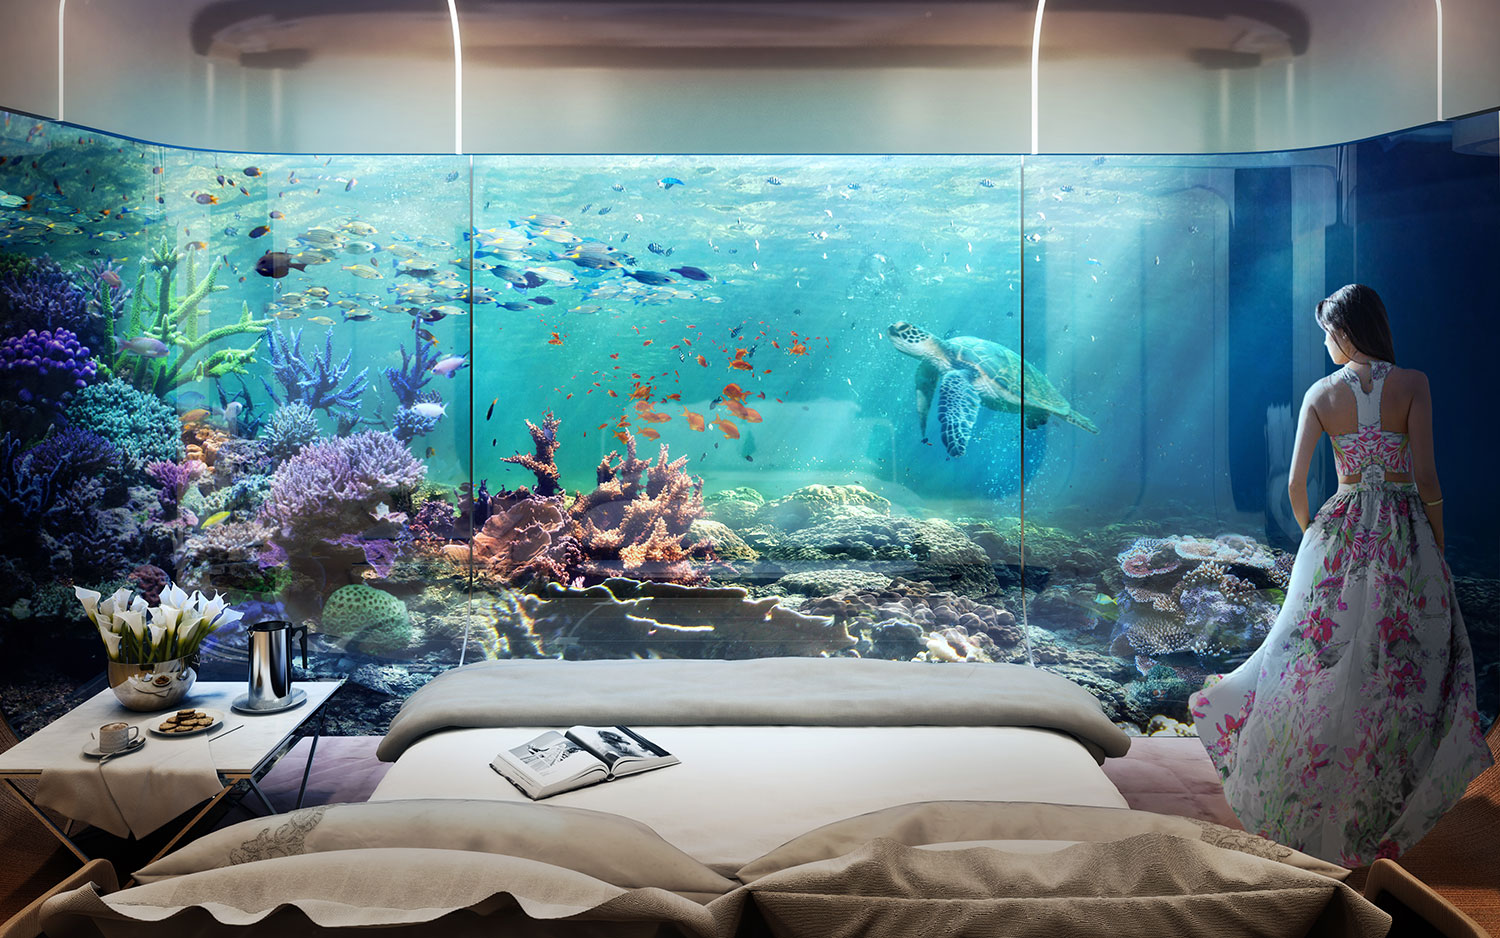 Floating Bedroom Dubai 39s First Floating Underwater Apartments Mr Goodlife